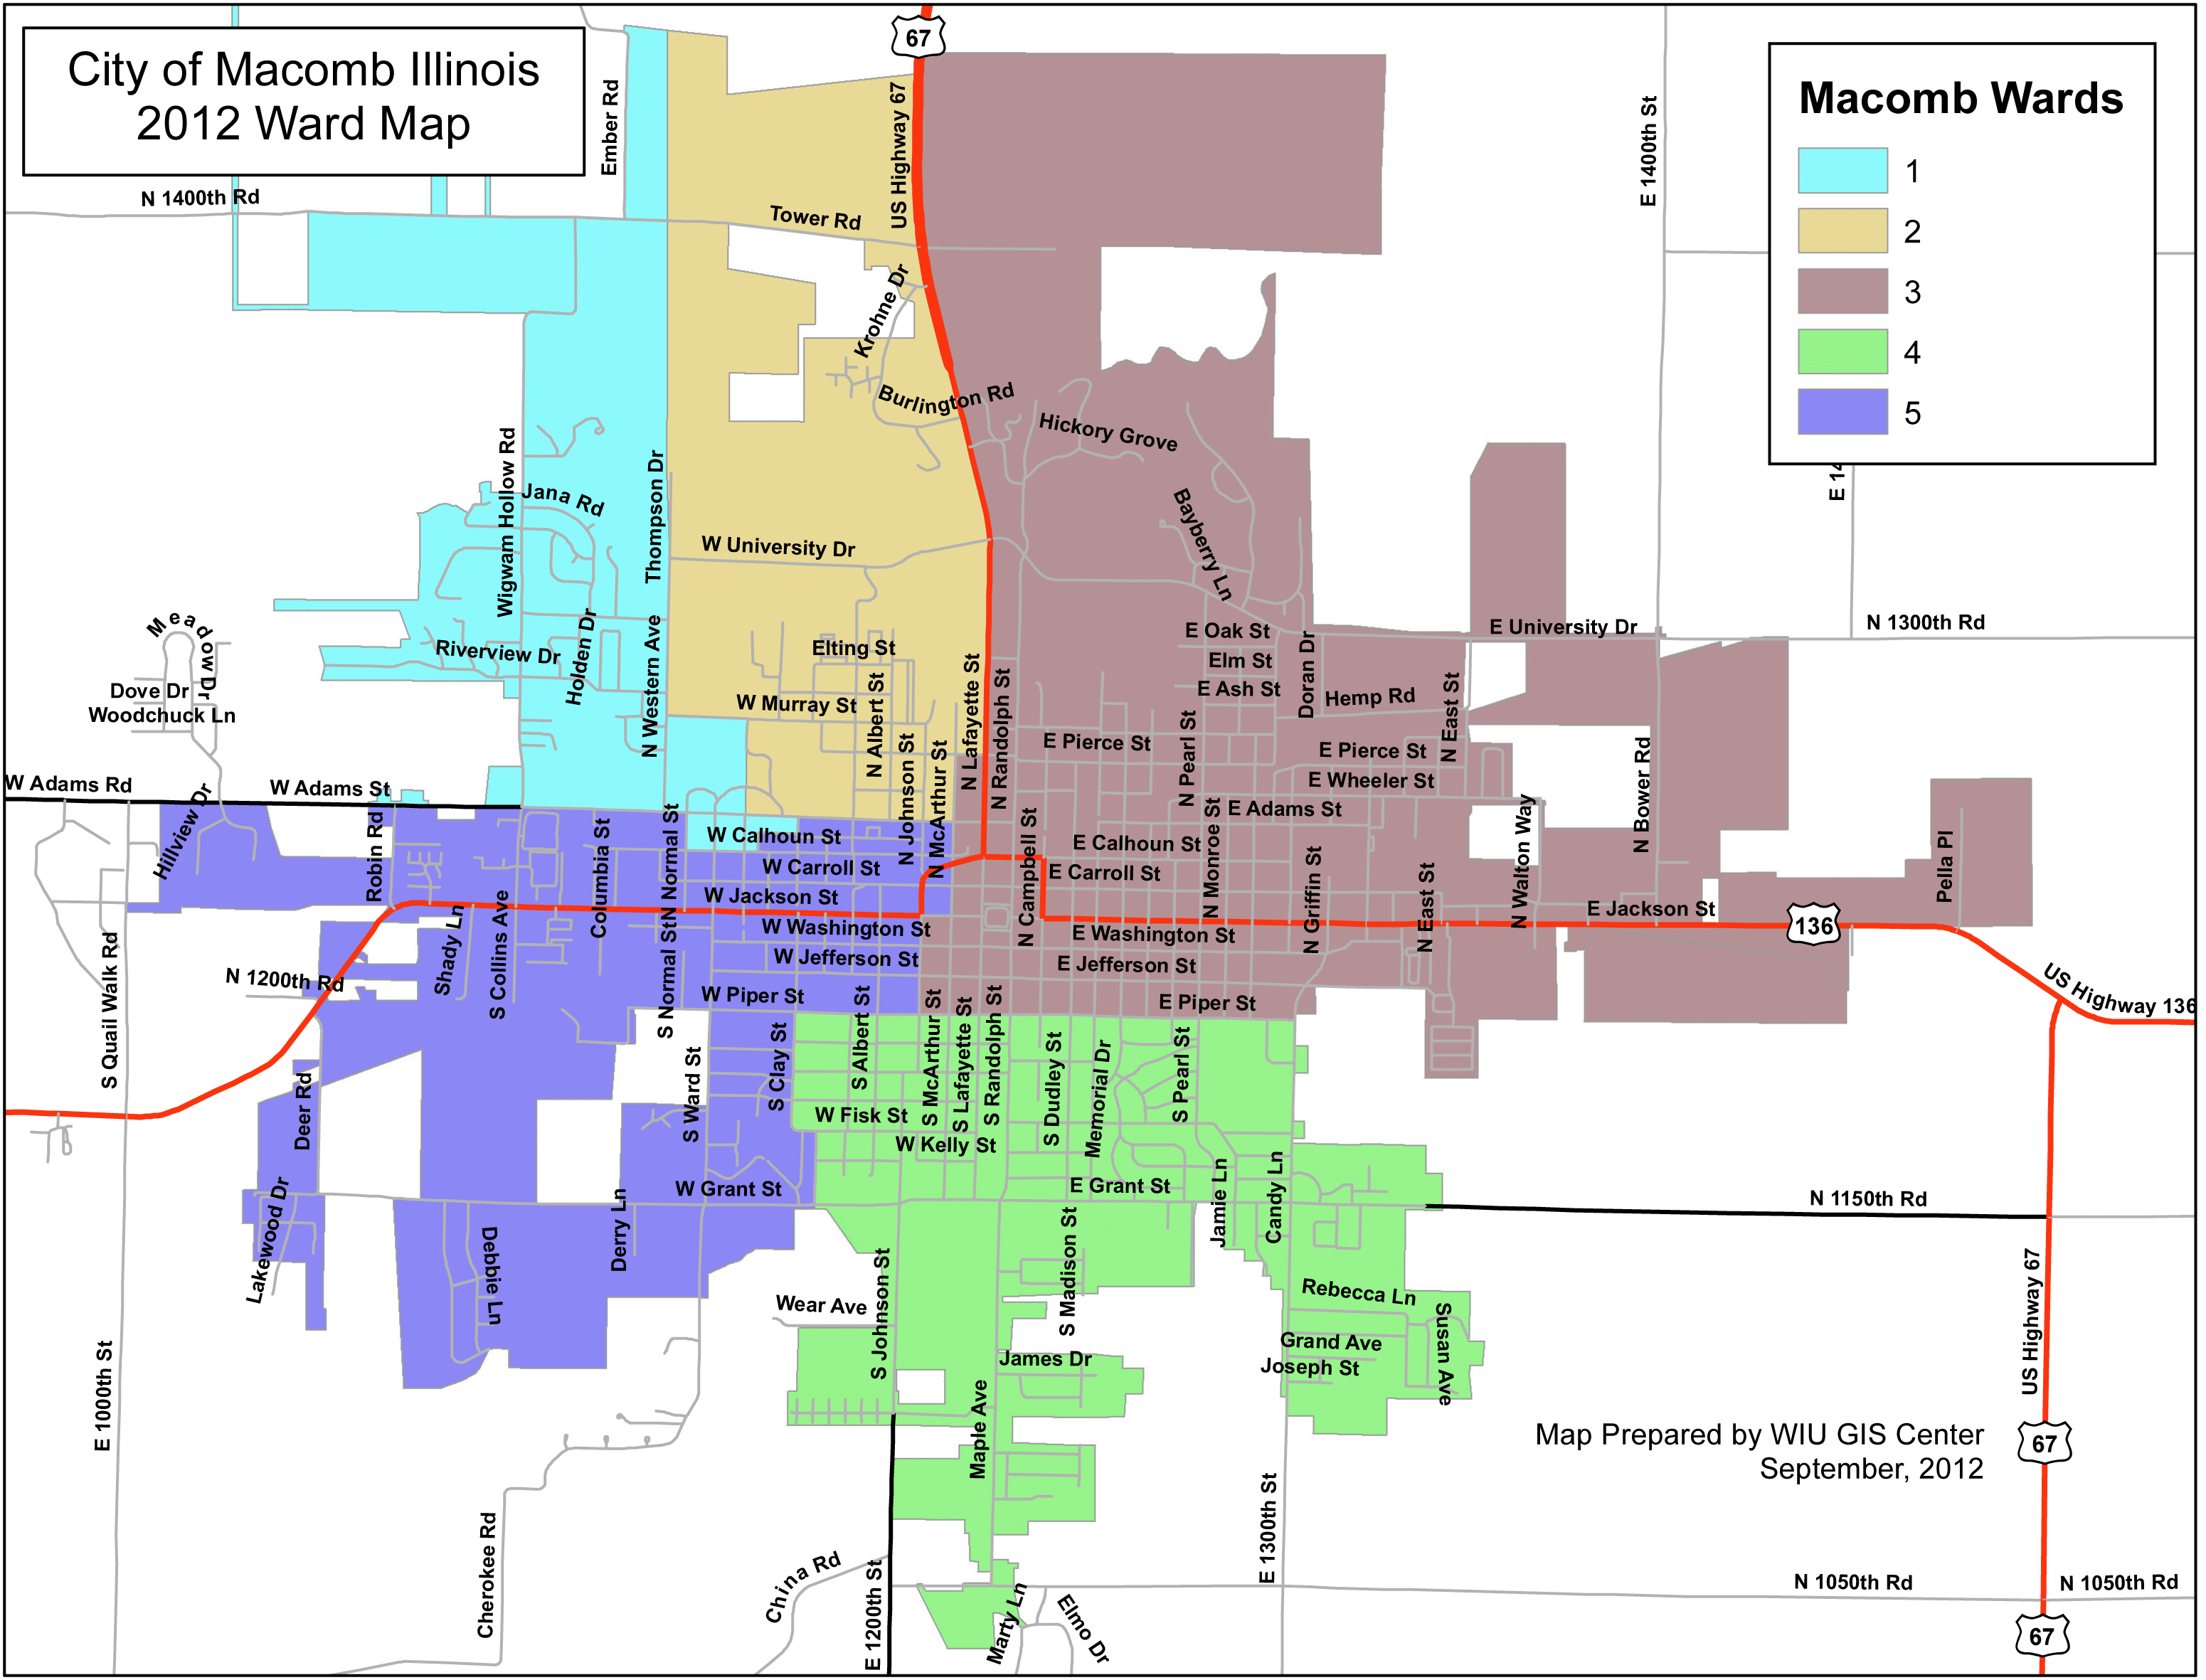 City only ward image